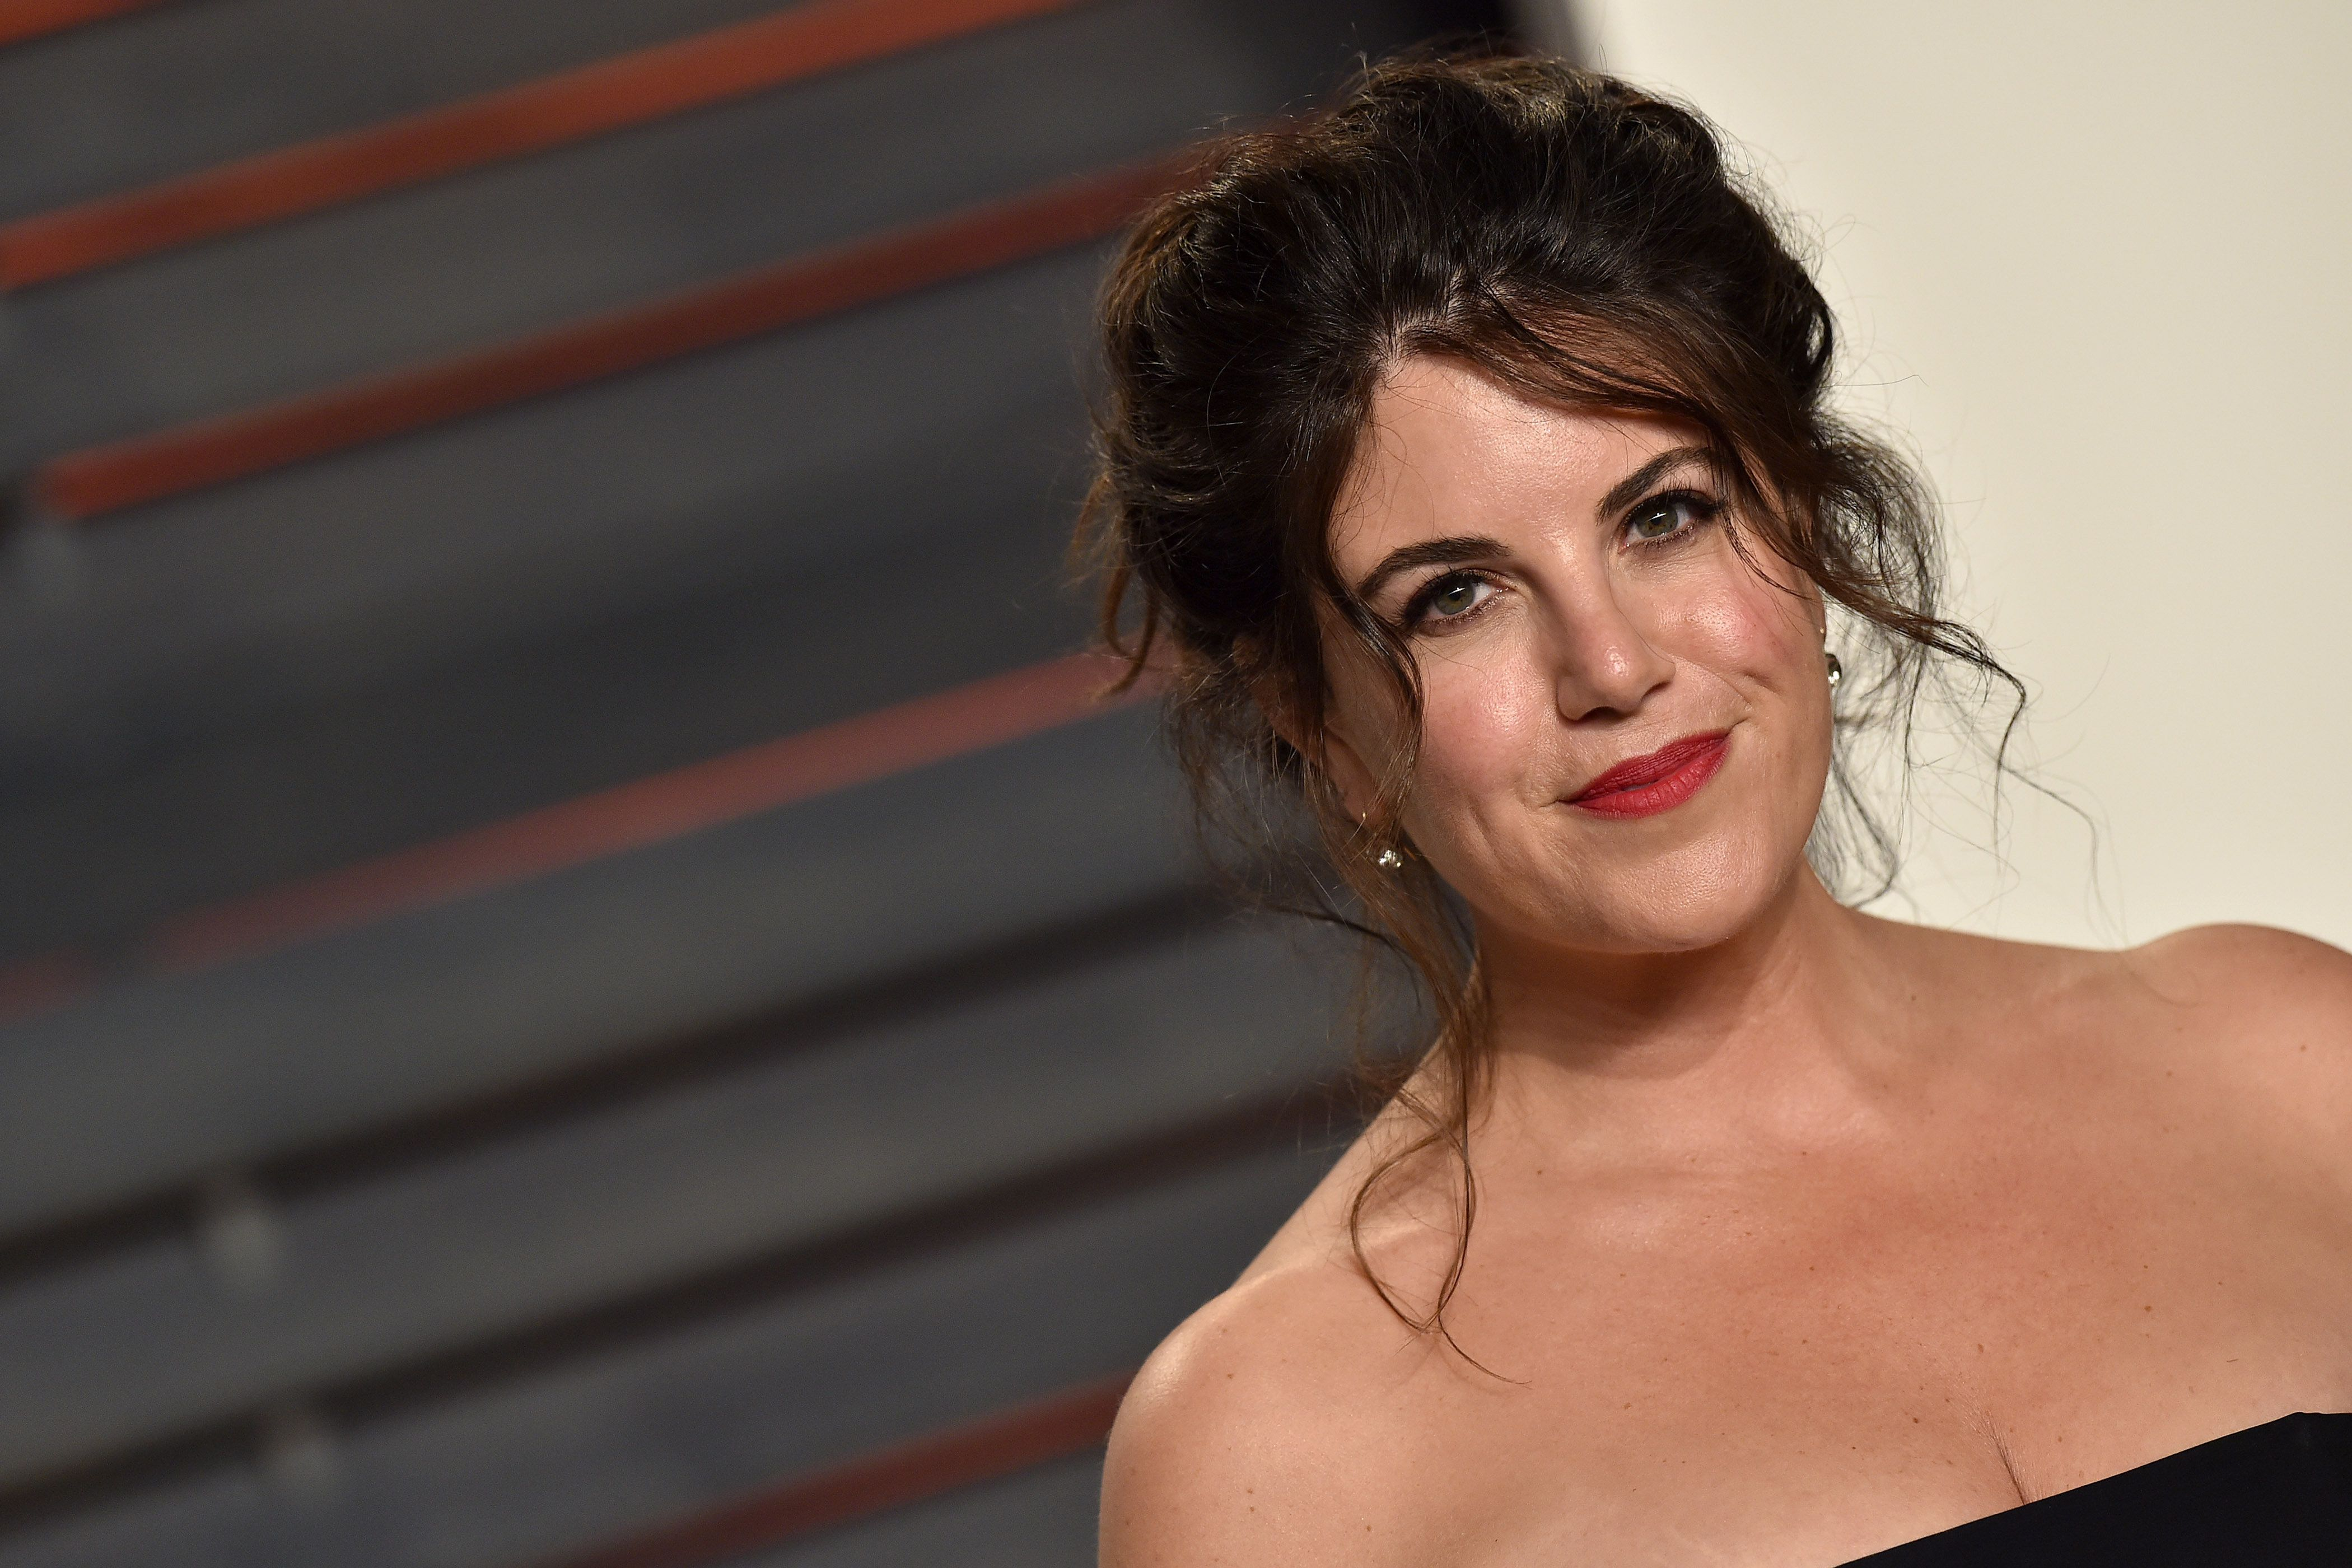 Lewinsky talked about being objectified in the media and the impact of online harassment in a recent interview with The Guard